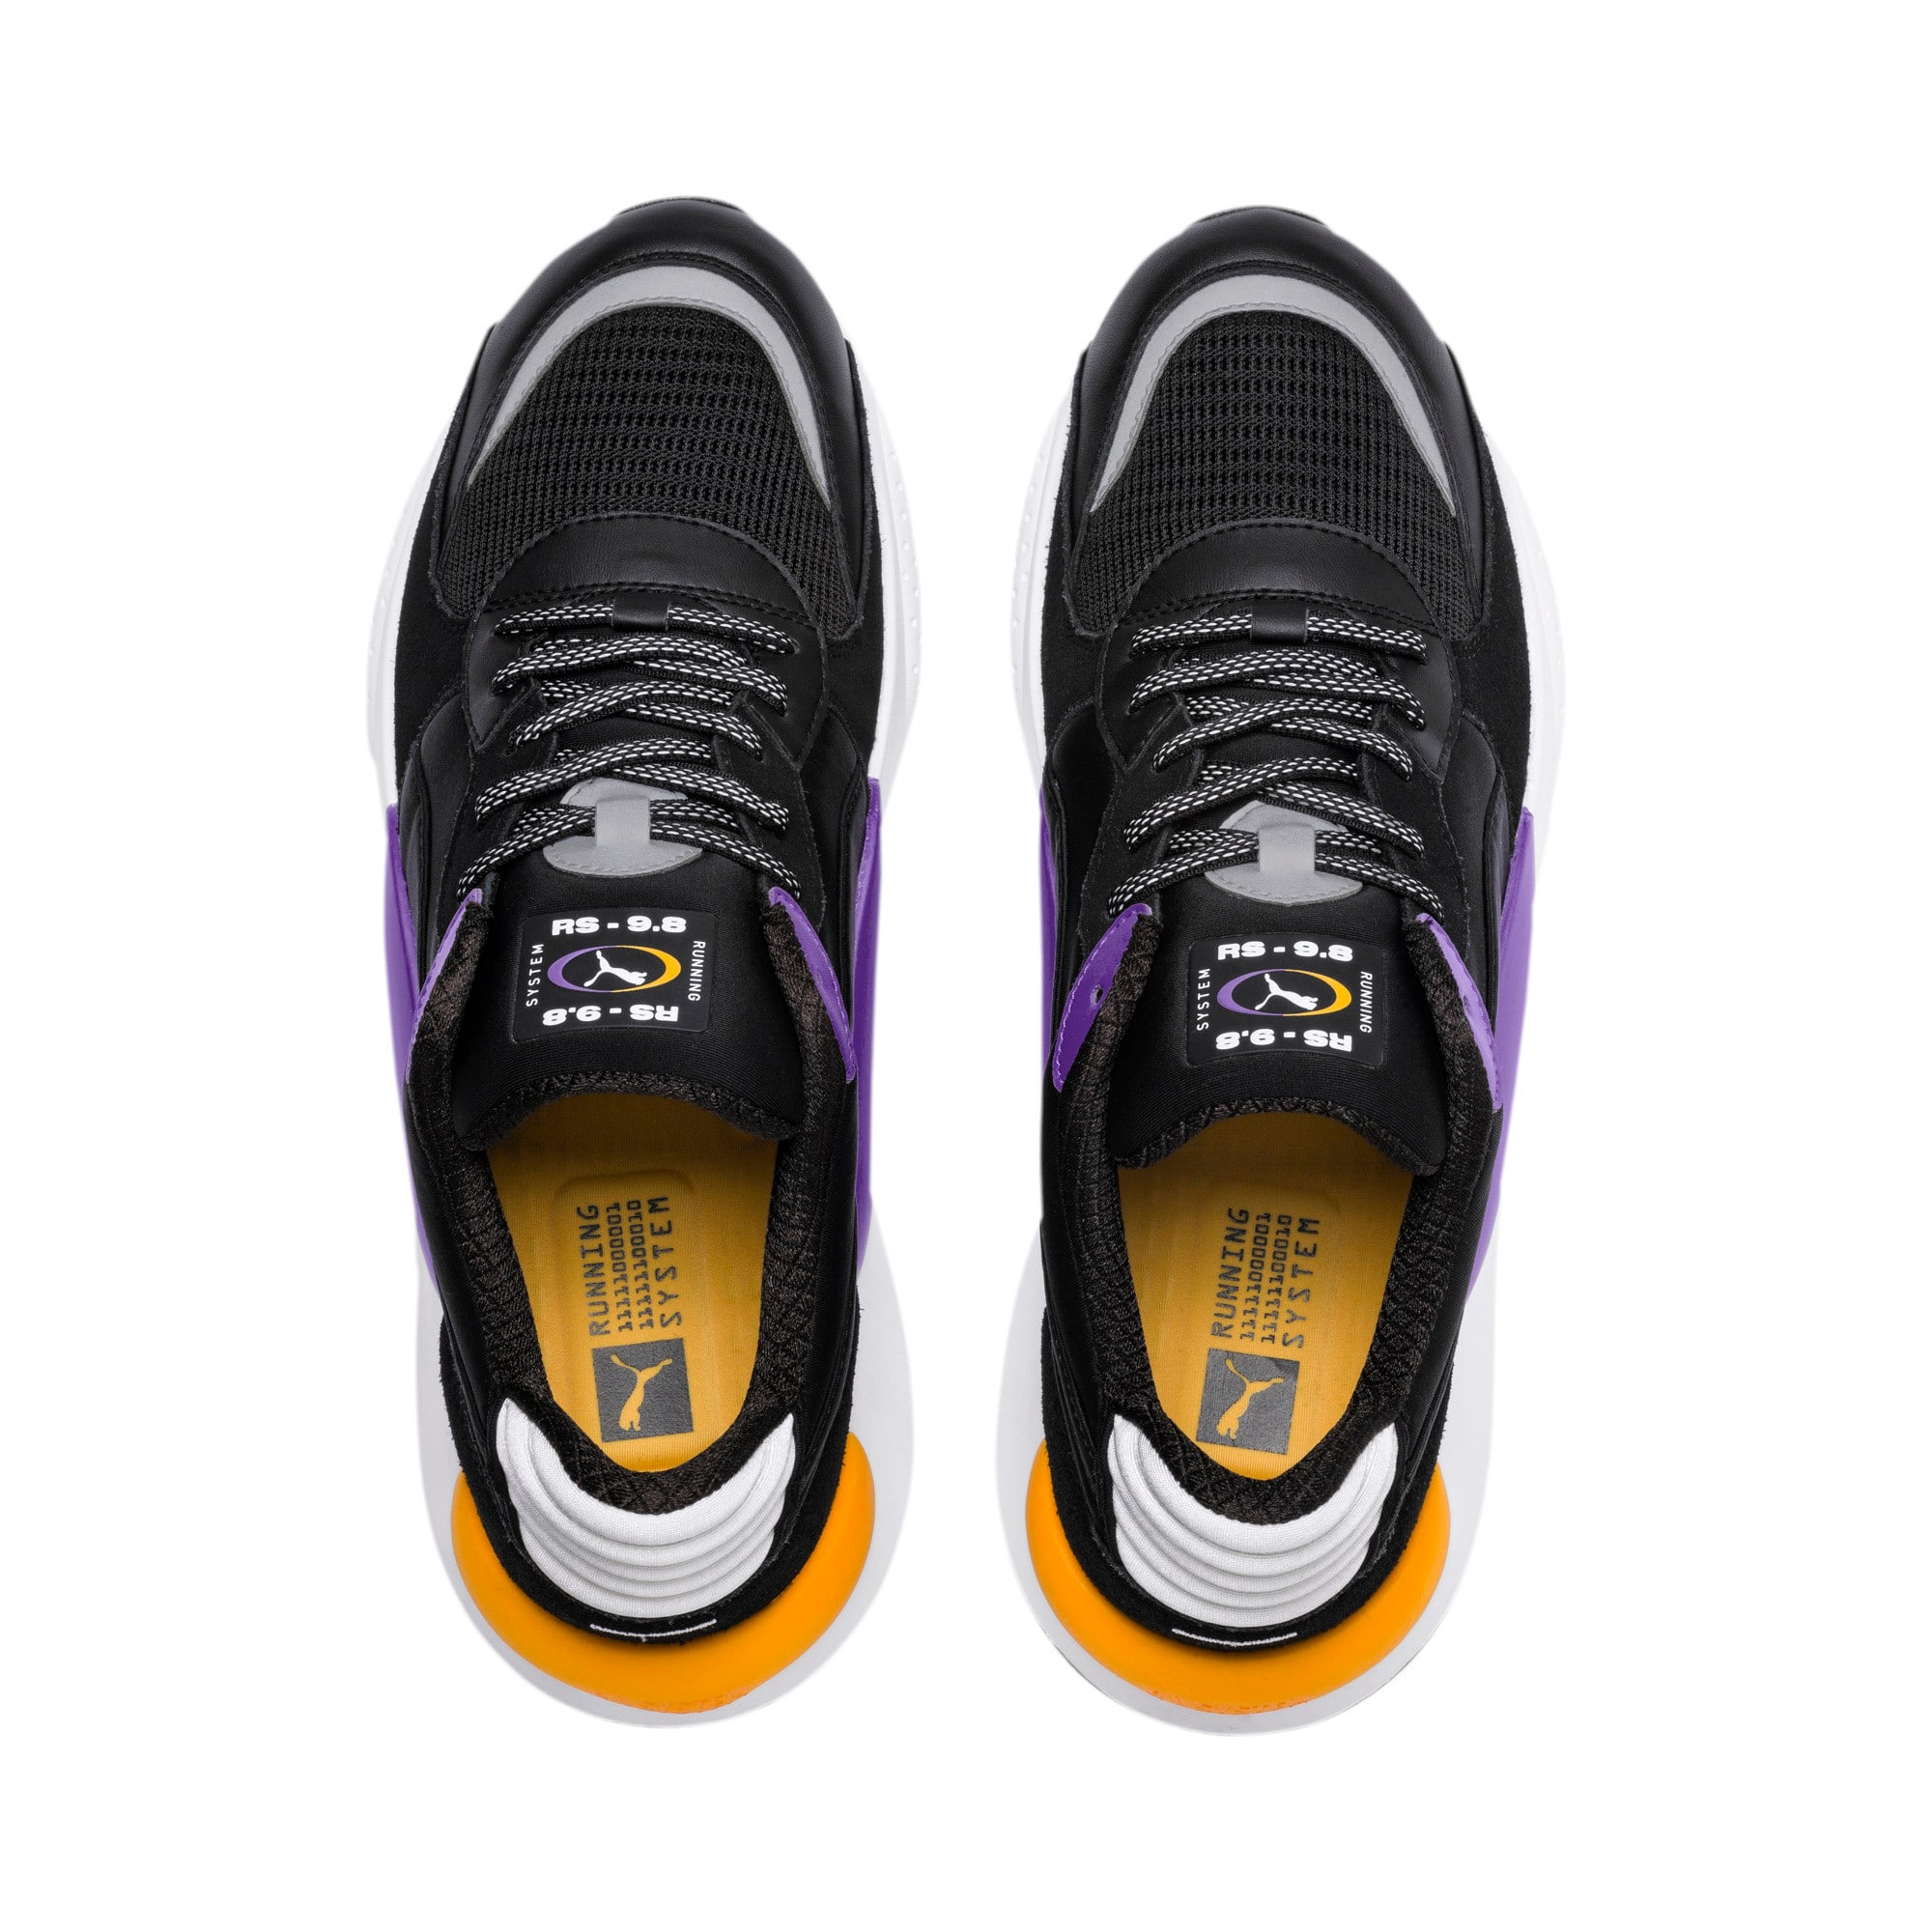 Thumbnail 7 of RS 9.8 Gravity Trainers, Puma Black-Purple Glimmer, medium